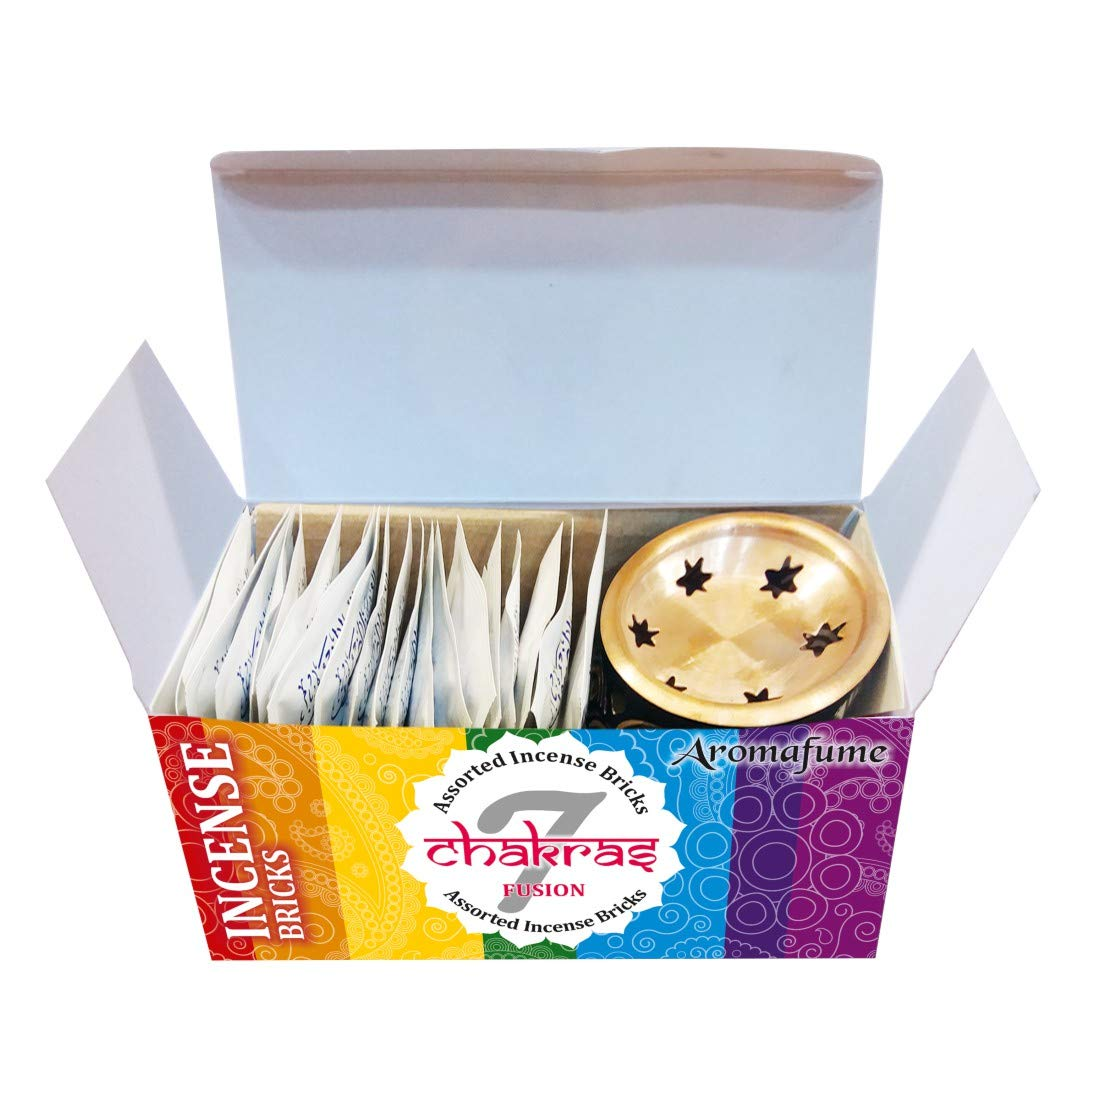 Aromafume 7 Chakra Incense Bricks Starter Kit containing Tree of Life Exotic Incense Diffuser (Gift Set). Ideal for Meditation, Purification, Yoga, Chakra Alignment, Relaxation, Healing & Rituals by Aromafume (Image #5)